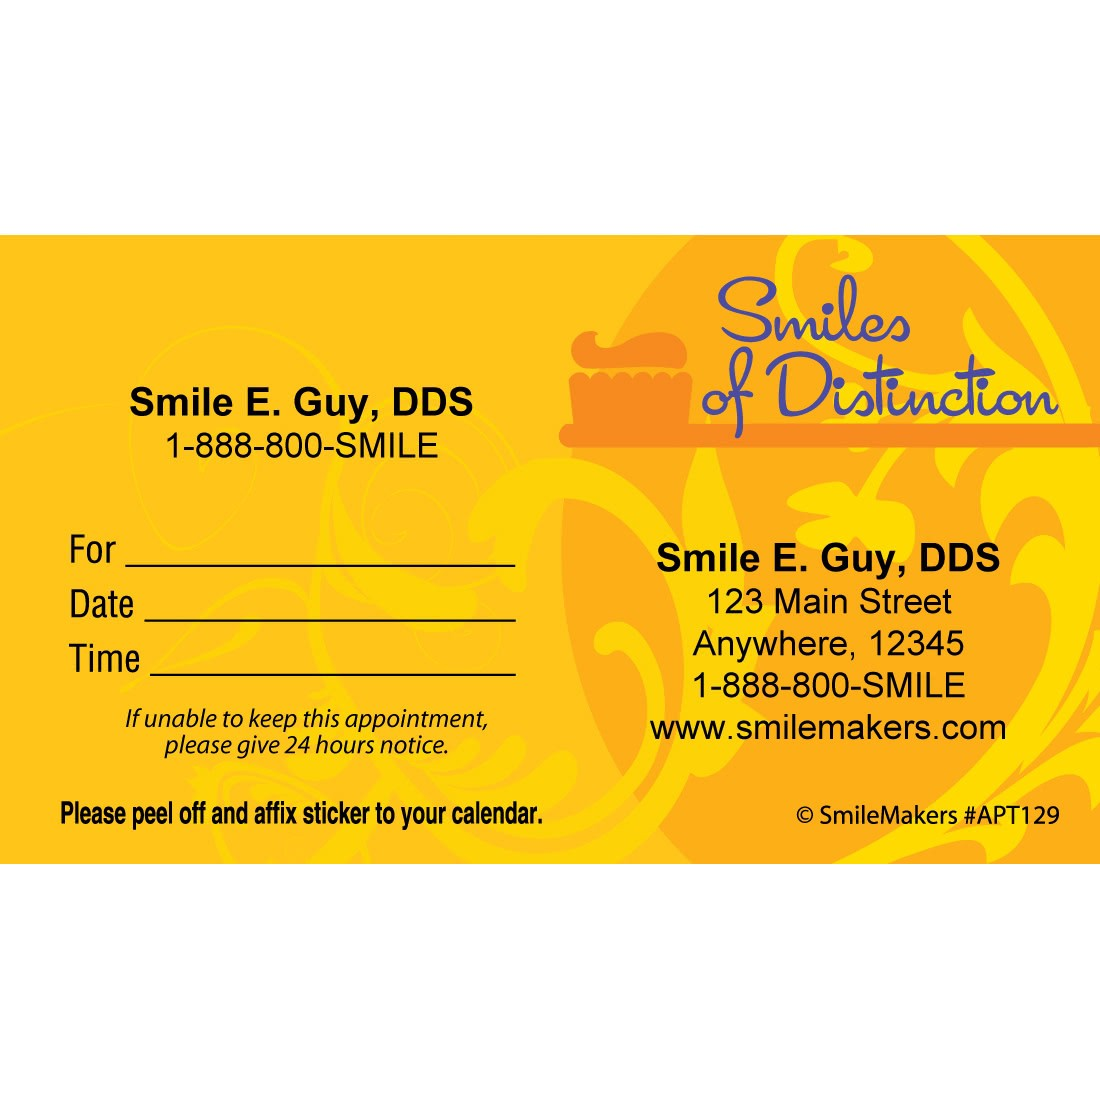 Custom Smiles of Distinction Appointment Cards [image]